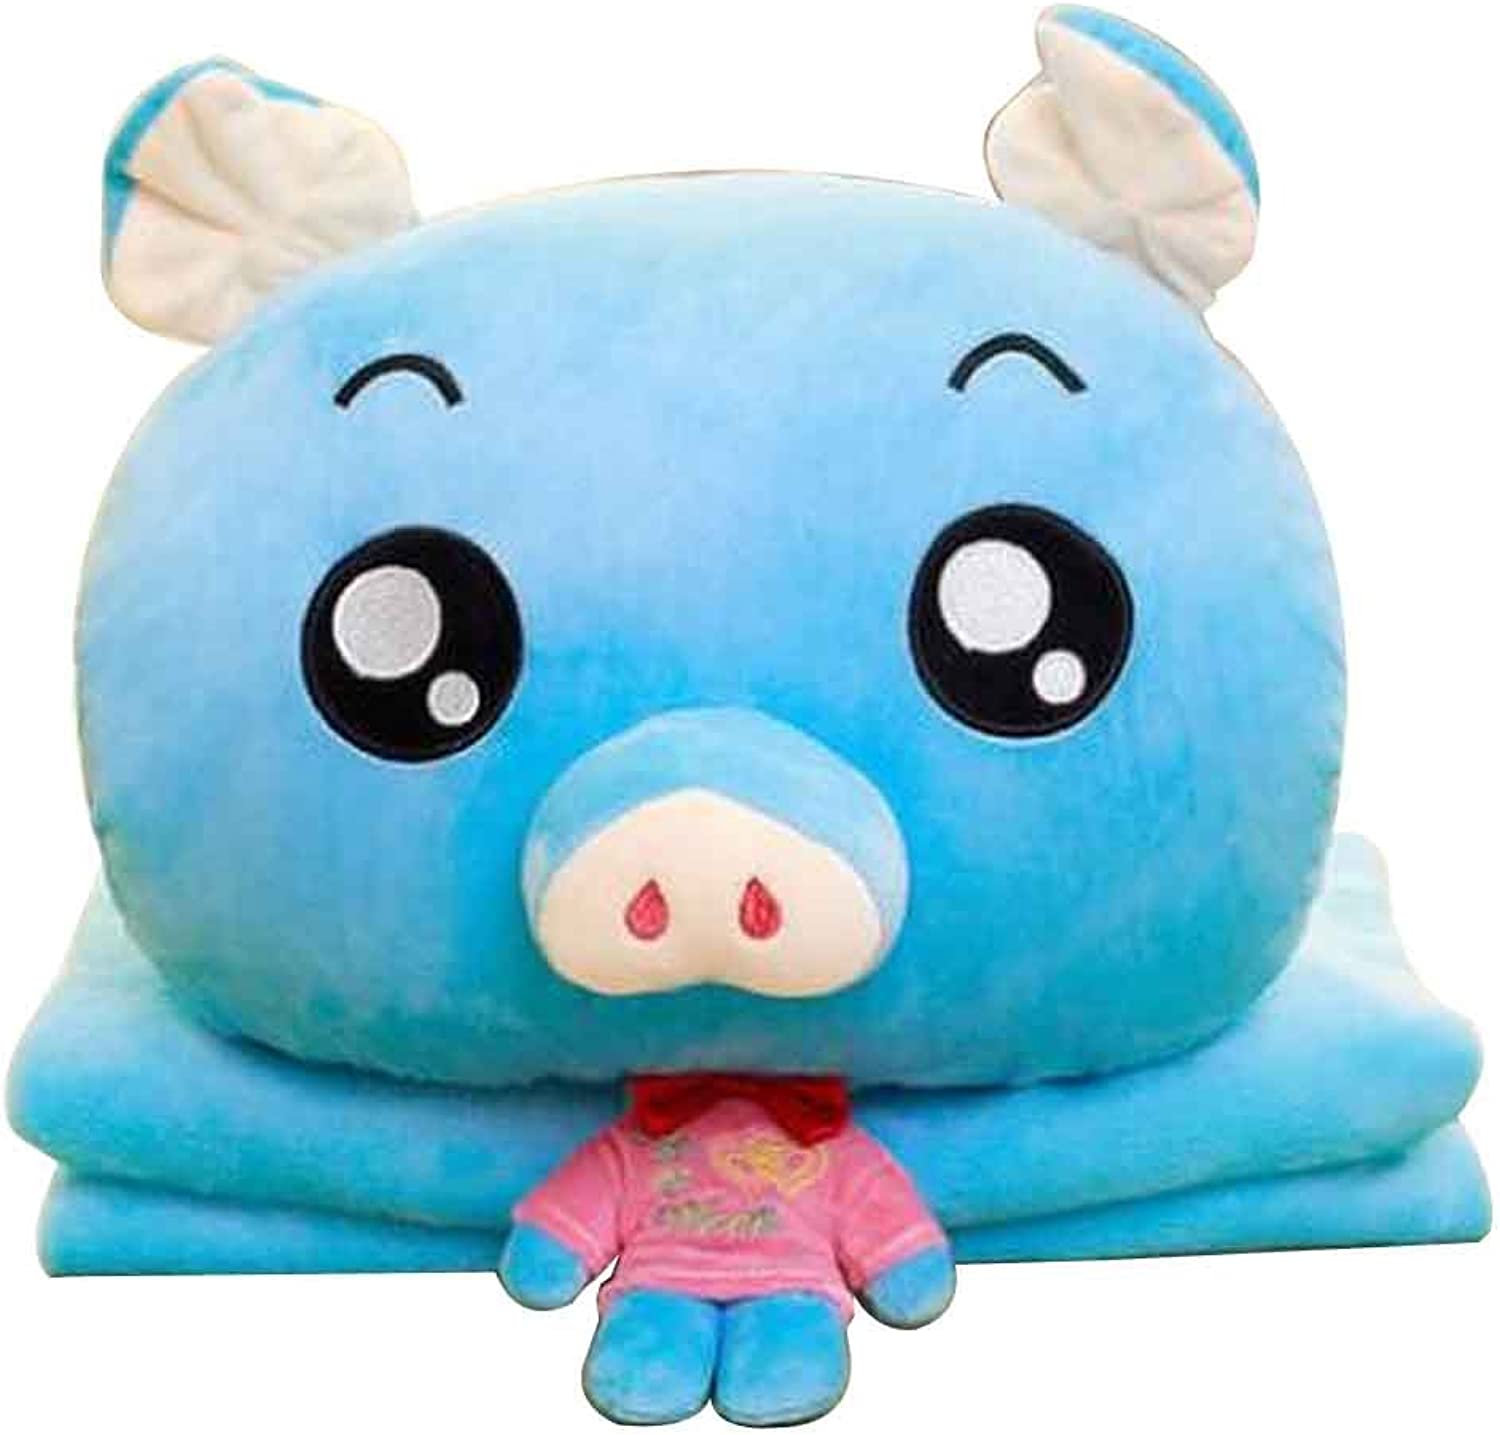 Cute Little Pig 3 in 1 Blanket Cushion Pillow, Perfect Winter [H]